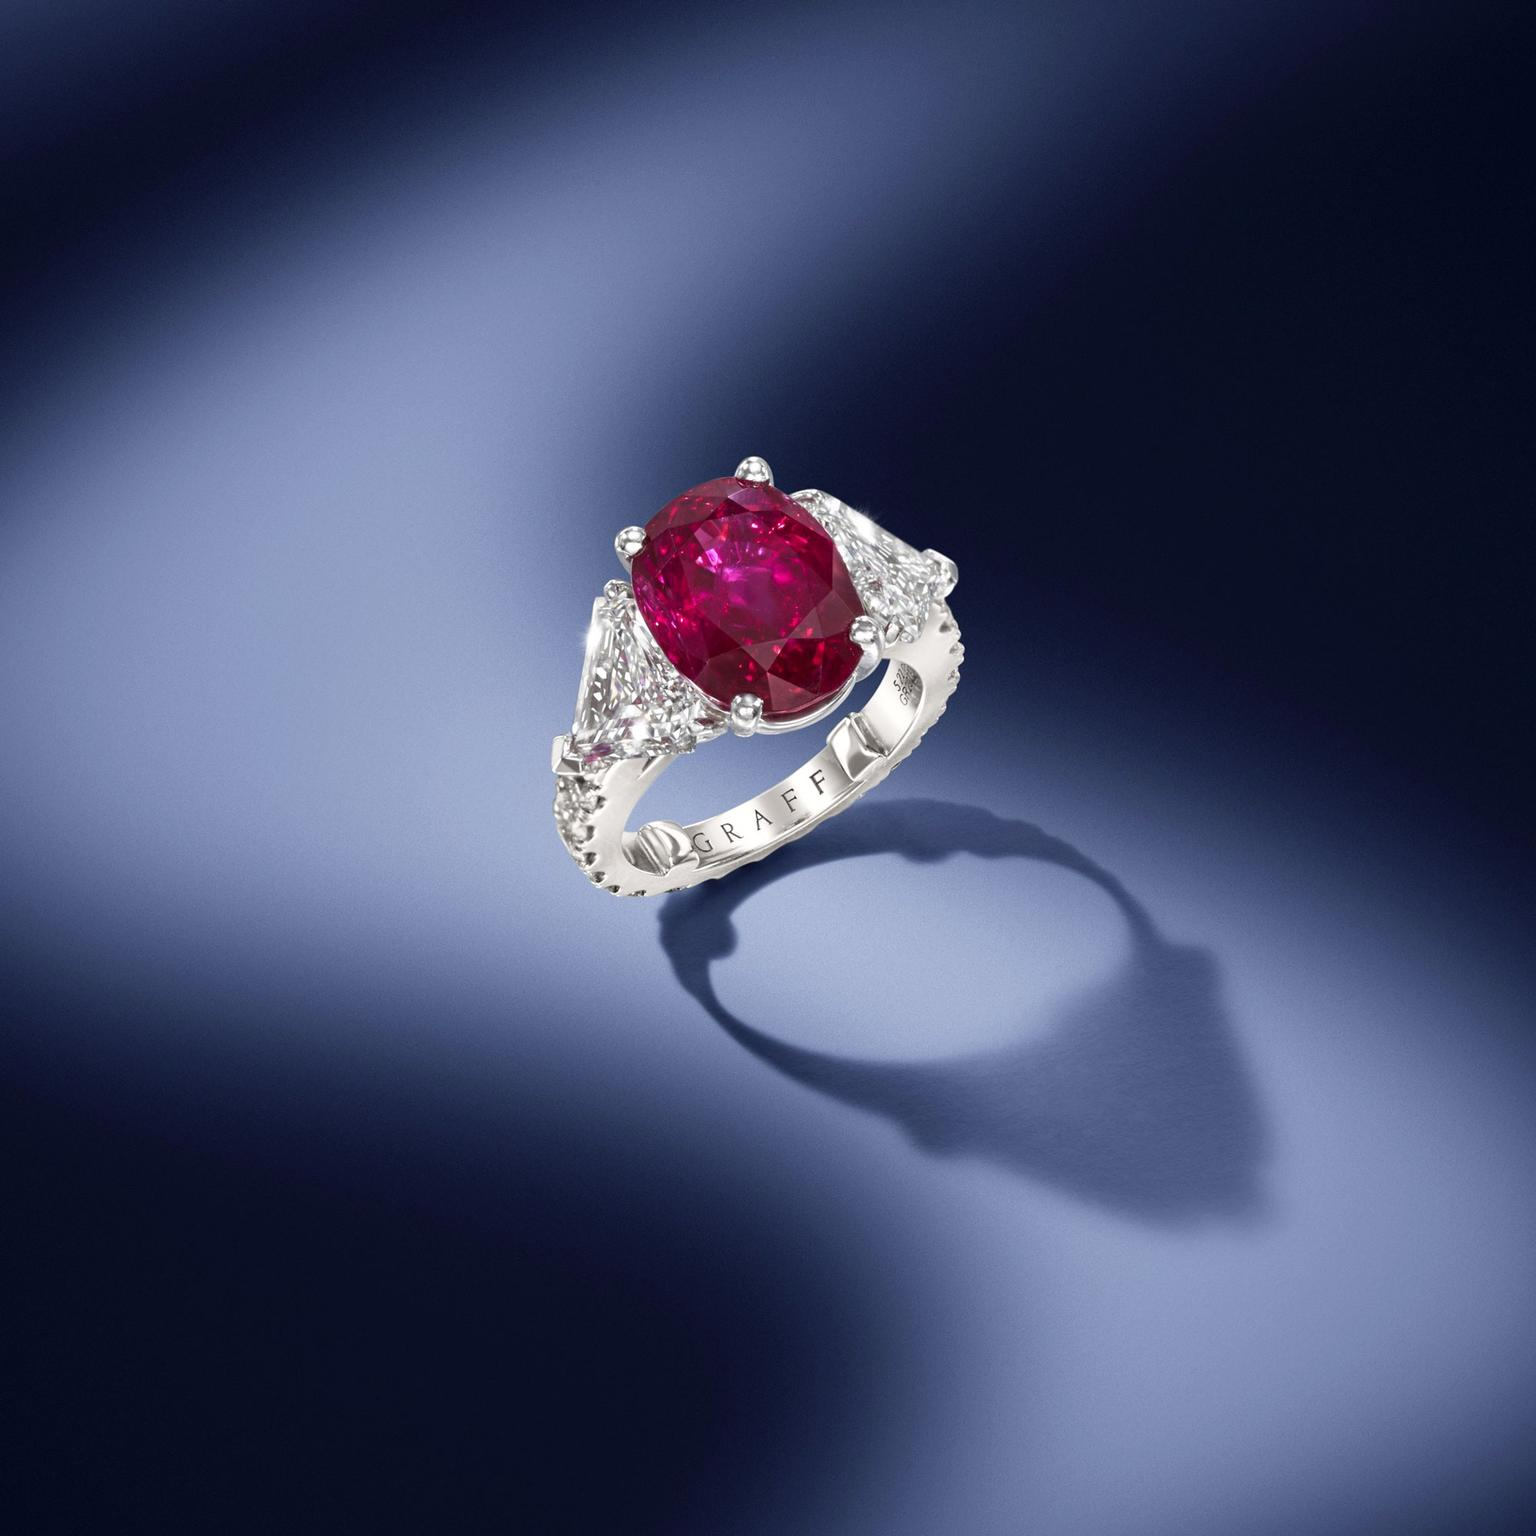 Graff Burmese ruby and diamond ring